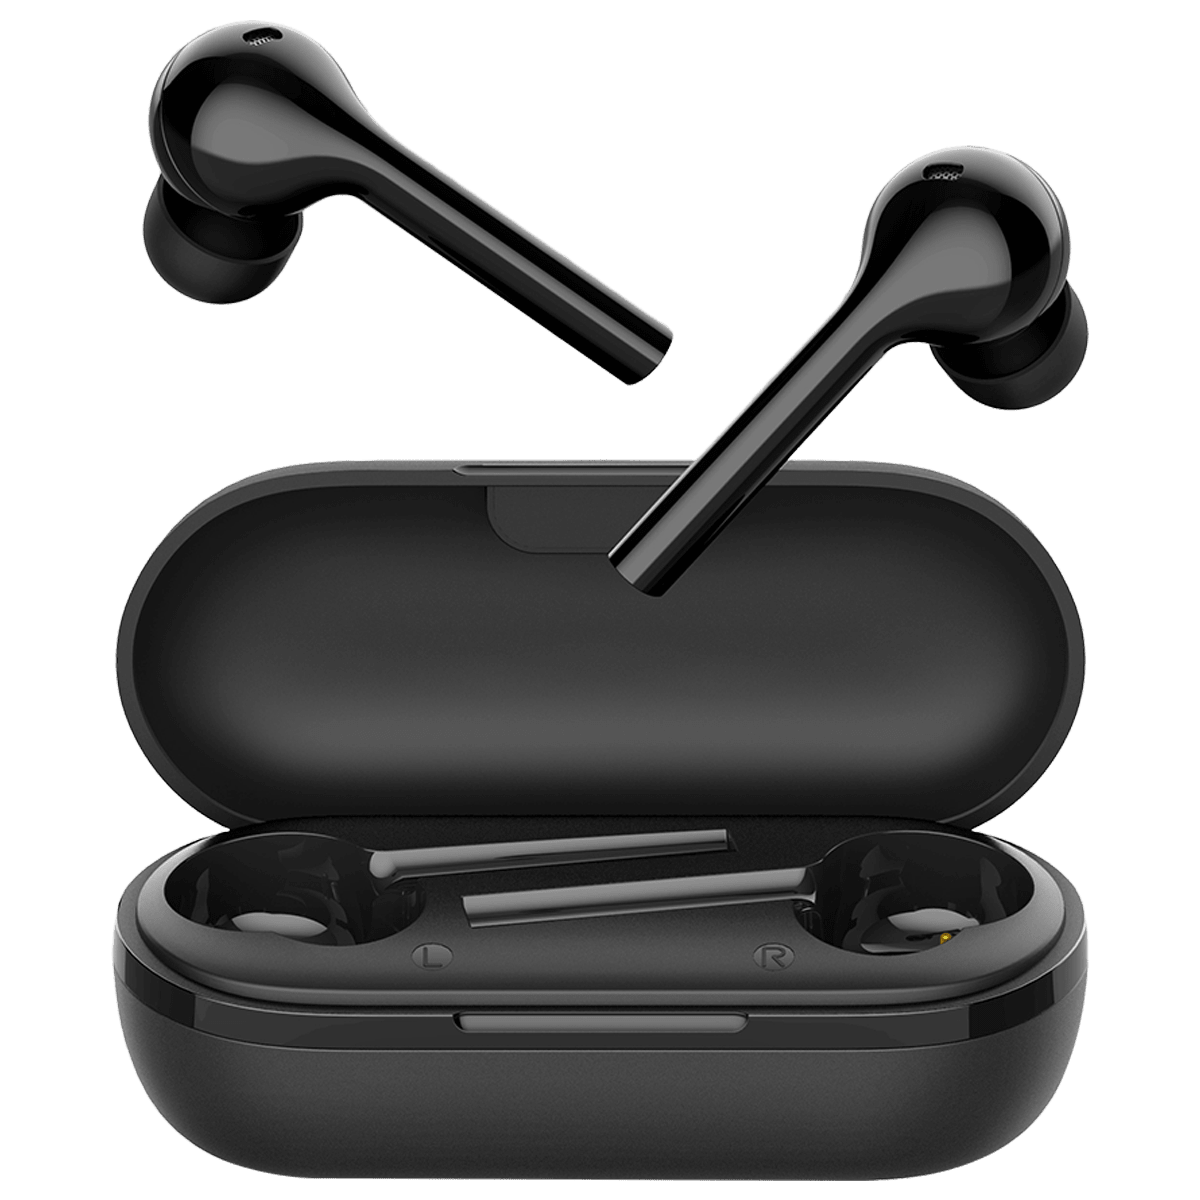 Lumiford Maximus In-Ear Truly Wireless Earbuds with Mic (Bluetooth 5.0, Voice Assistant Supported, T55, Black)